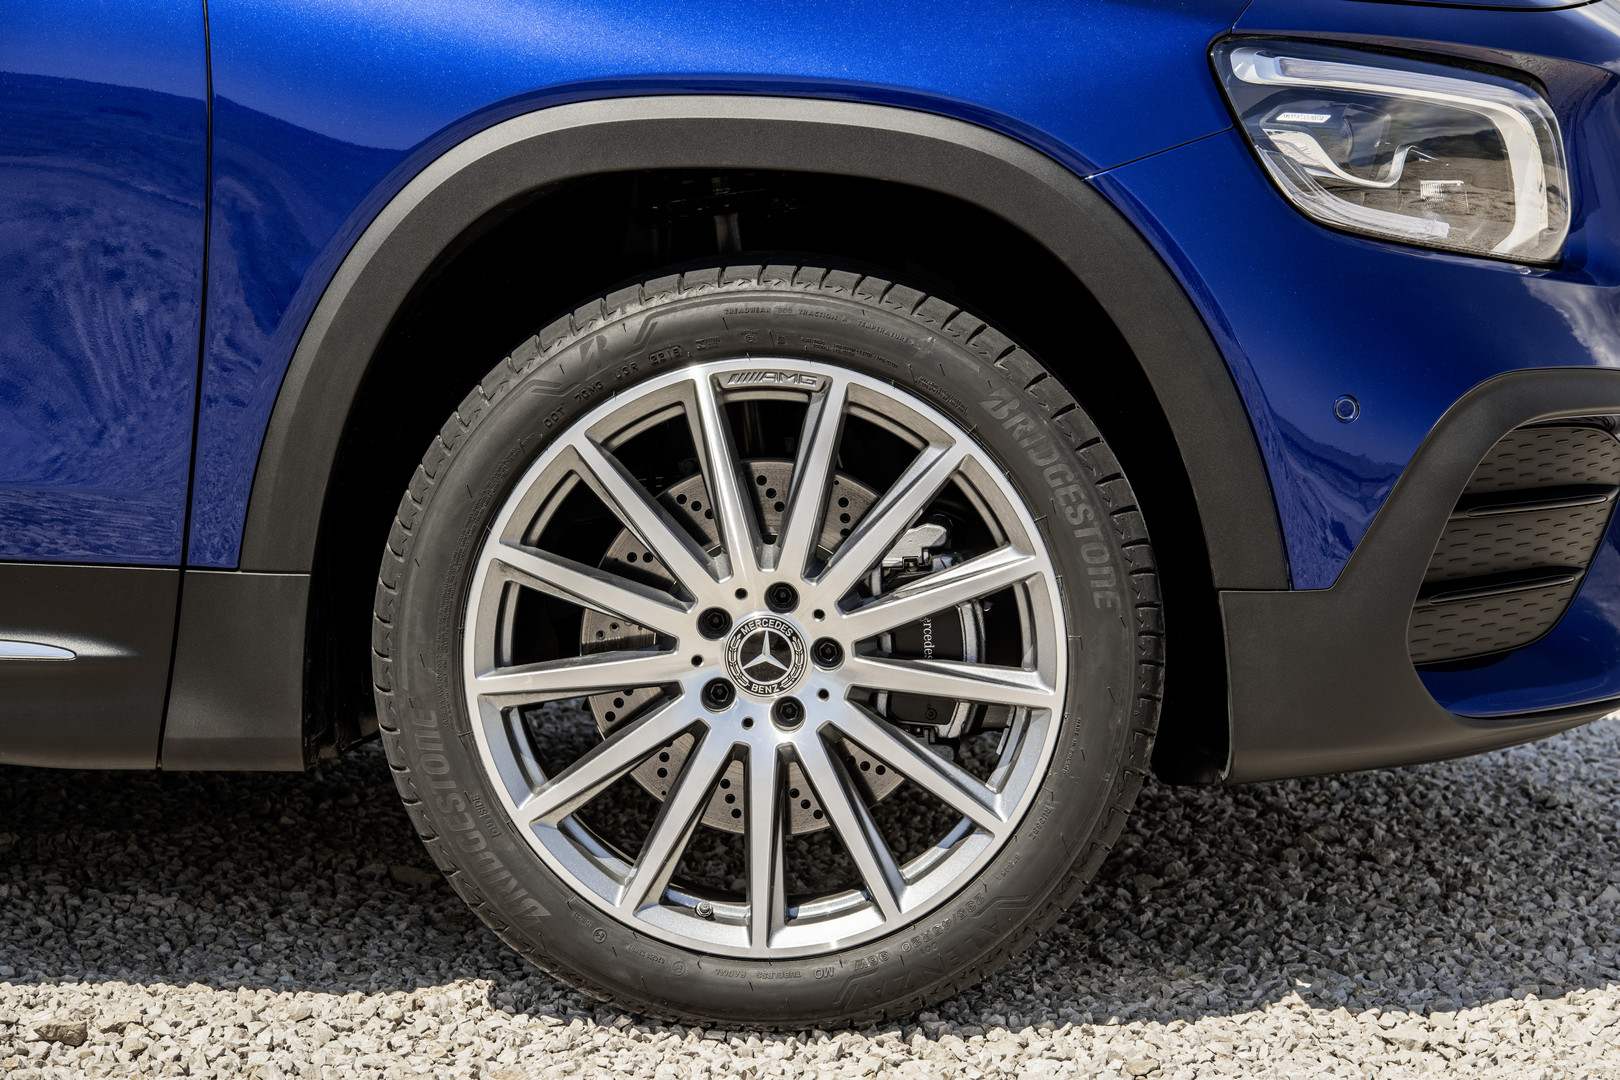 Mercedes-Benz GLB Wheels